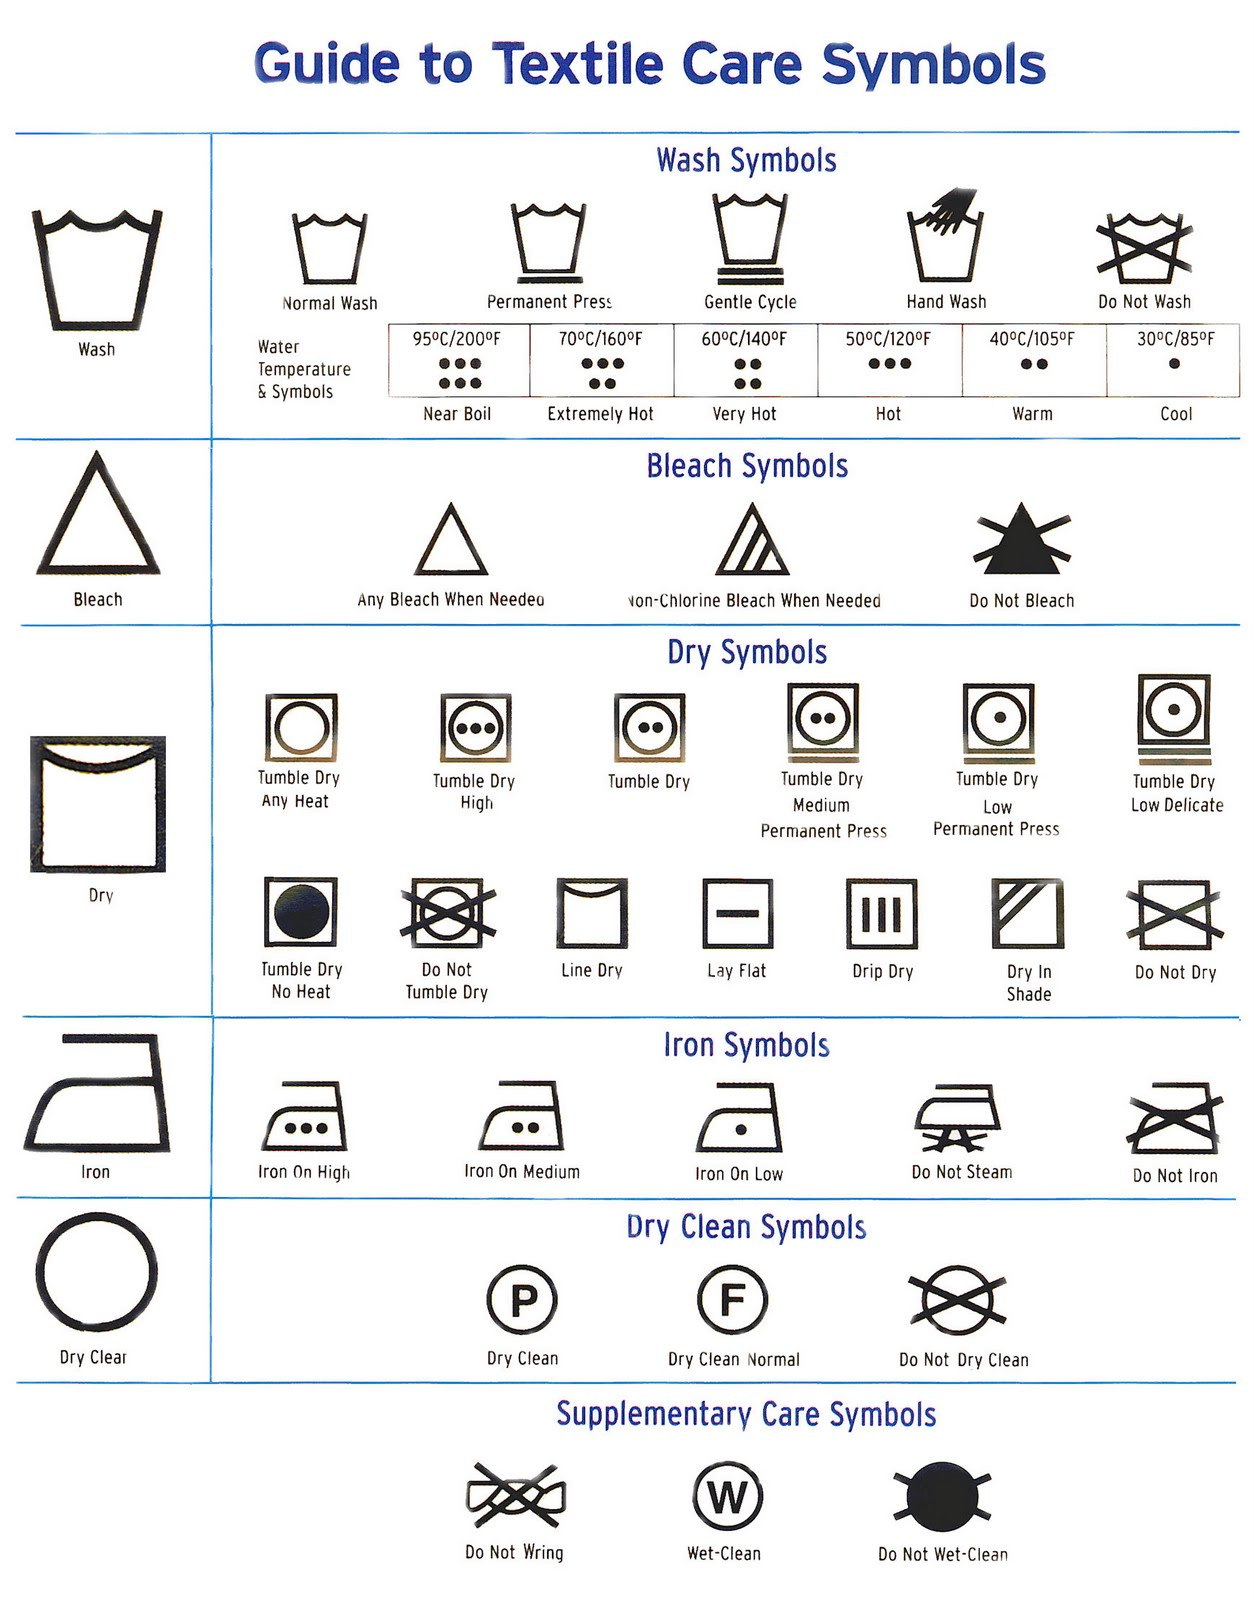 Washing Symbol Vector Pack. Choose from thousands of free vectors, clip art designs, icons, and illustrations created by artists worldwide! Join Eezy! Login; Washing Symbol Vector Pack. Edit Vector Washing Vectors, Fashion - symbol vectors for washers and dryers. Download these washer and dryer symbol vectors! Free Download Attribution Required.